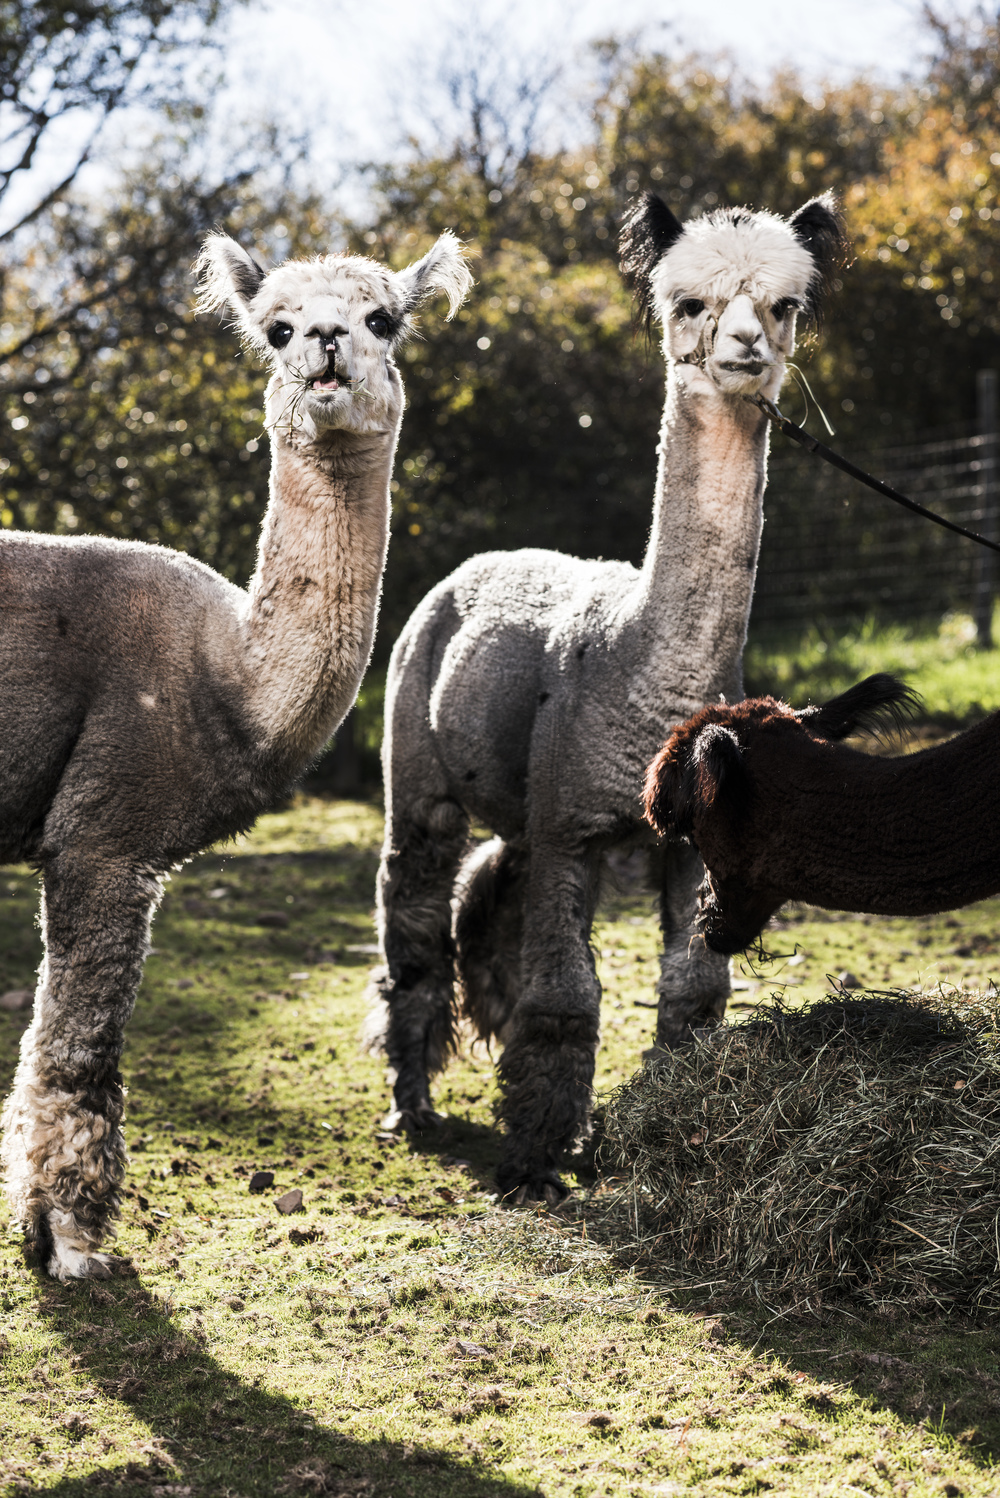 Imagine_Alpacas_eddie_adams_workshop_2015 (1 of 11).jpg